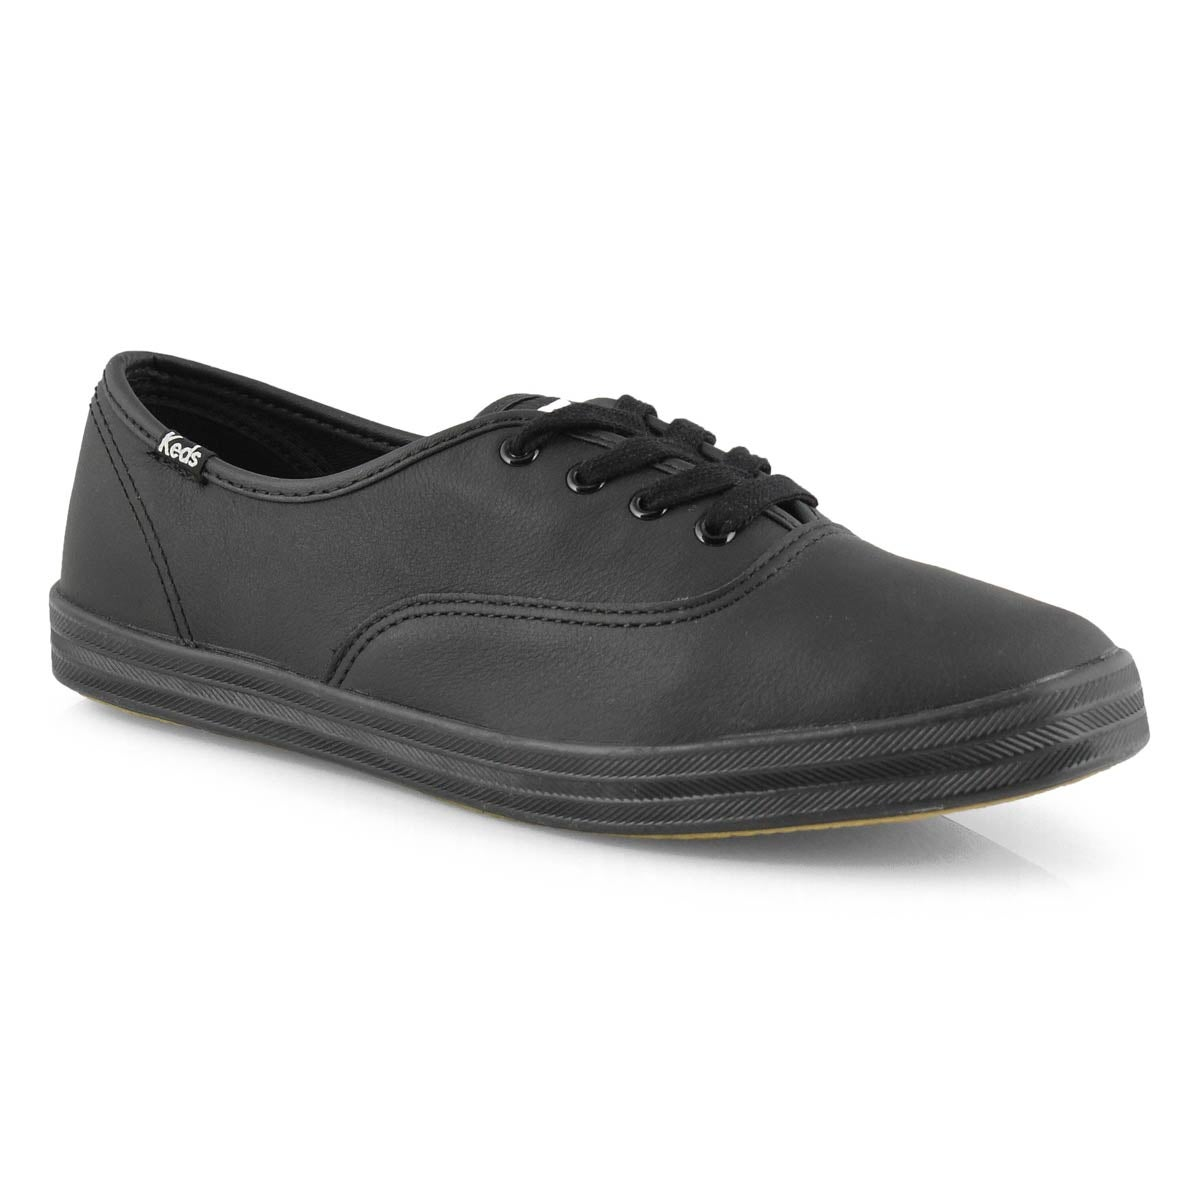 Women's CHAMPION OXFORD black leather sneakers